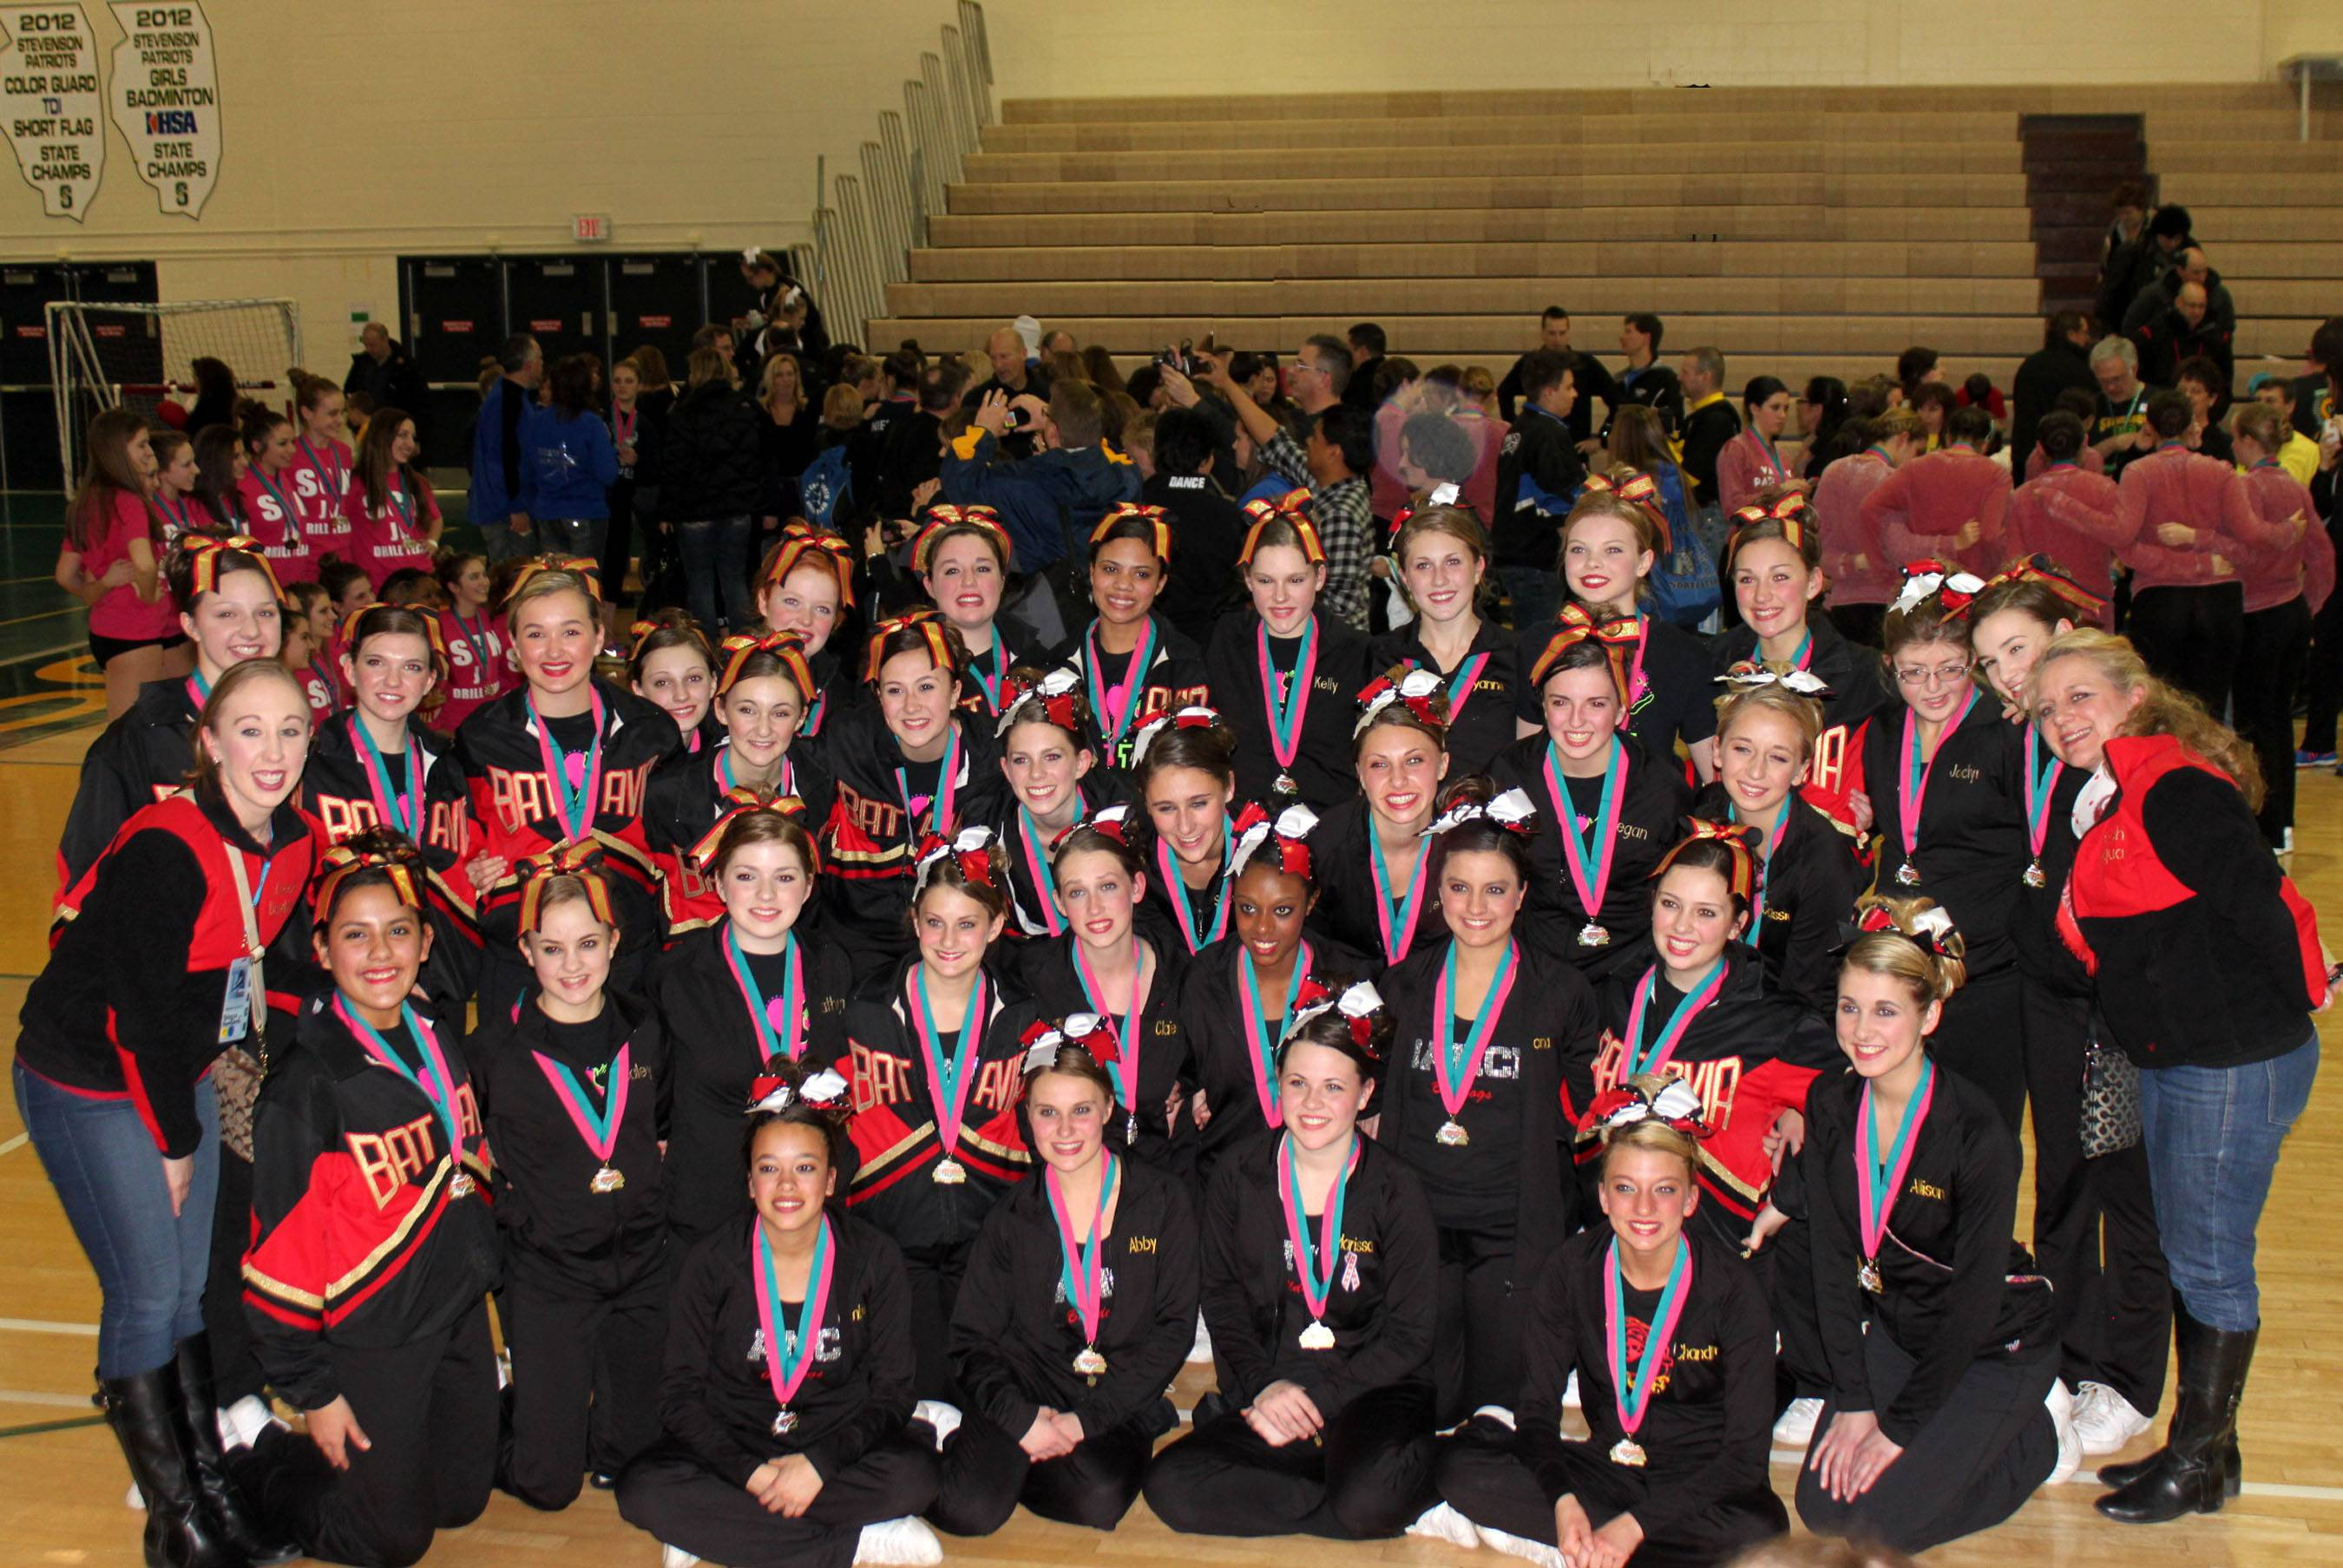 Batavia High School Varsity & JV Dance Teams compete at Stevenson High in Lincolnshire, their last TDI competition of season before State.